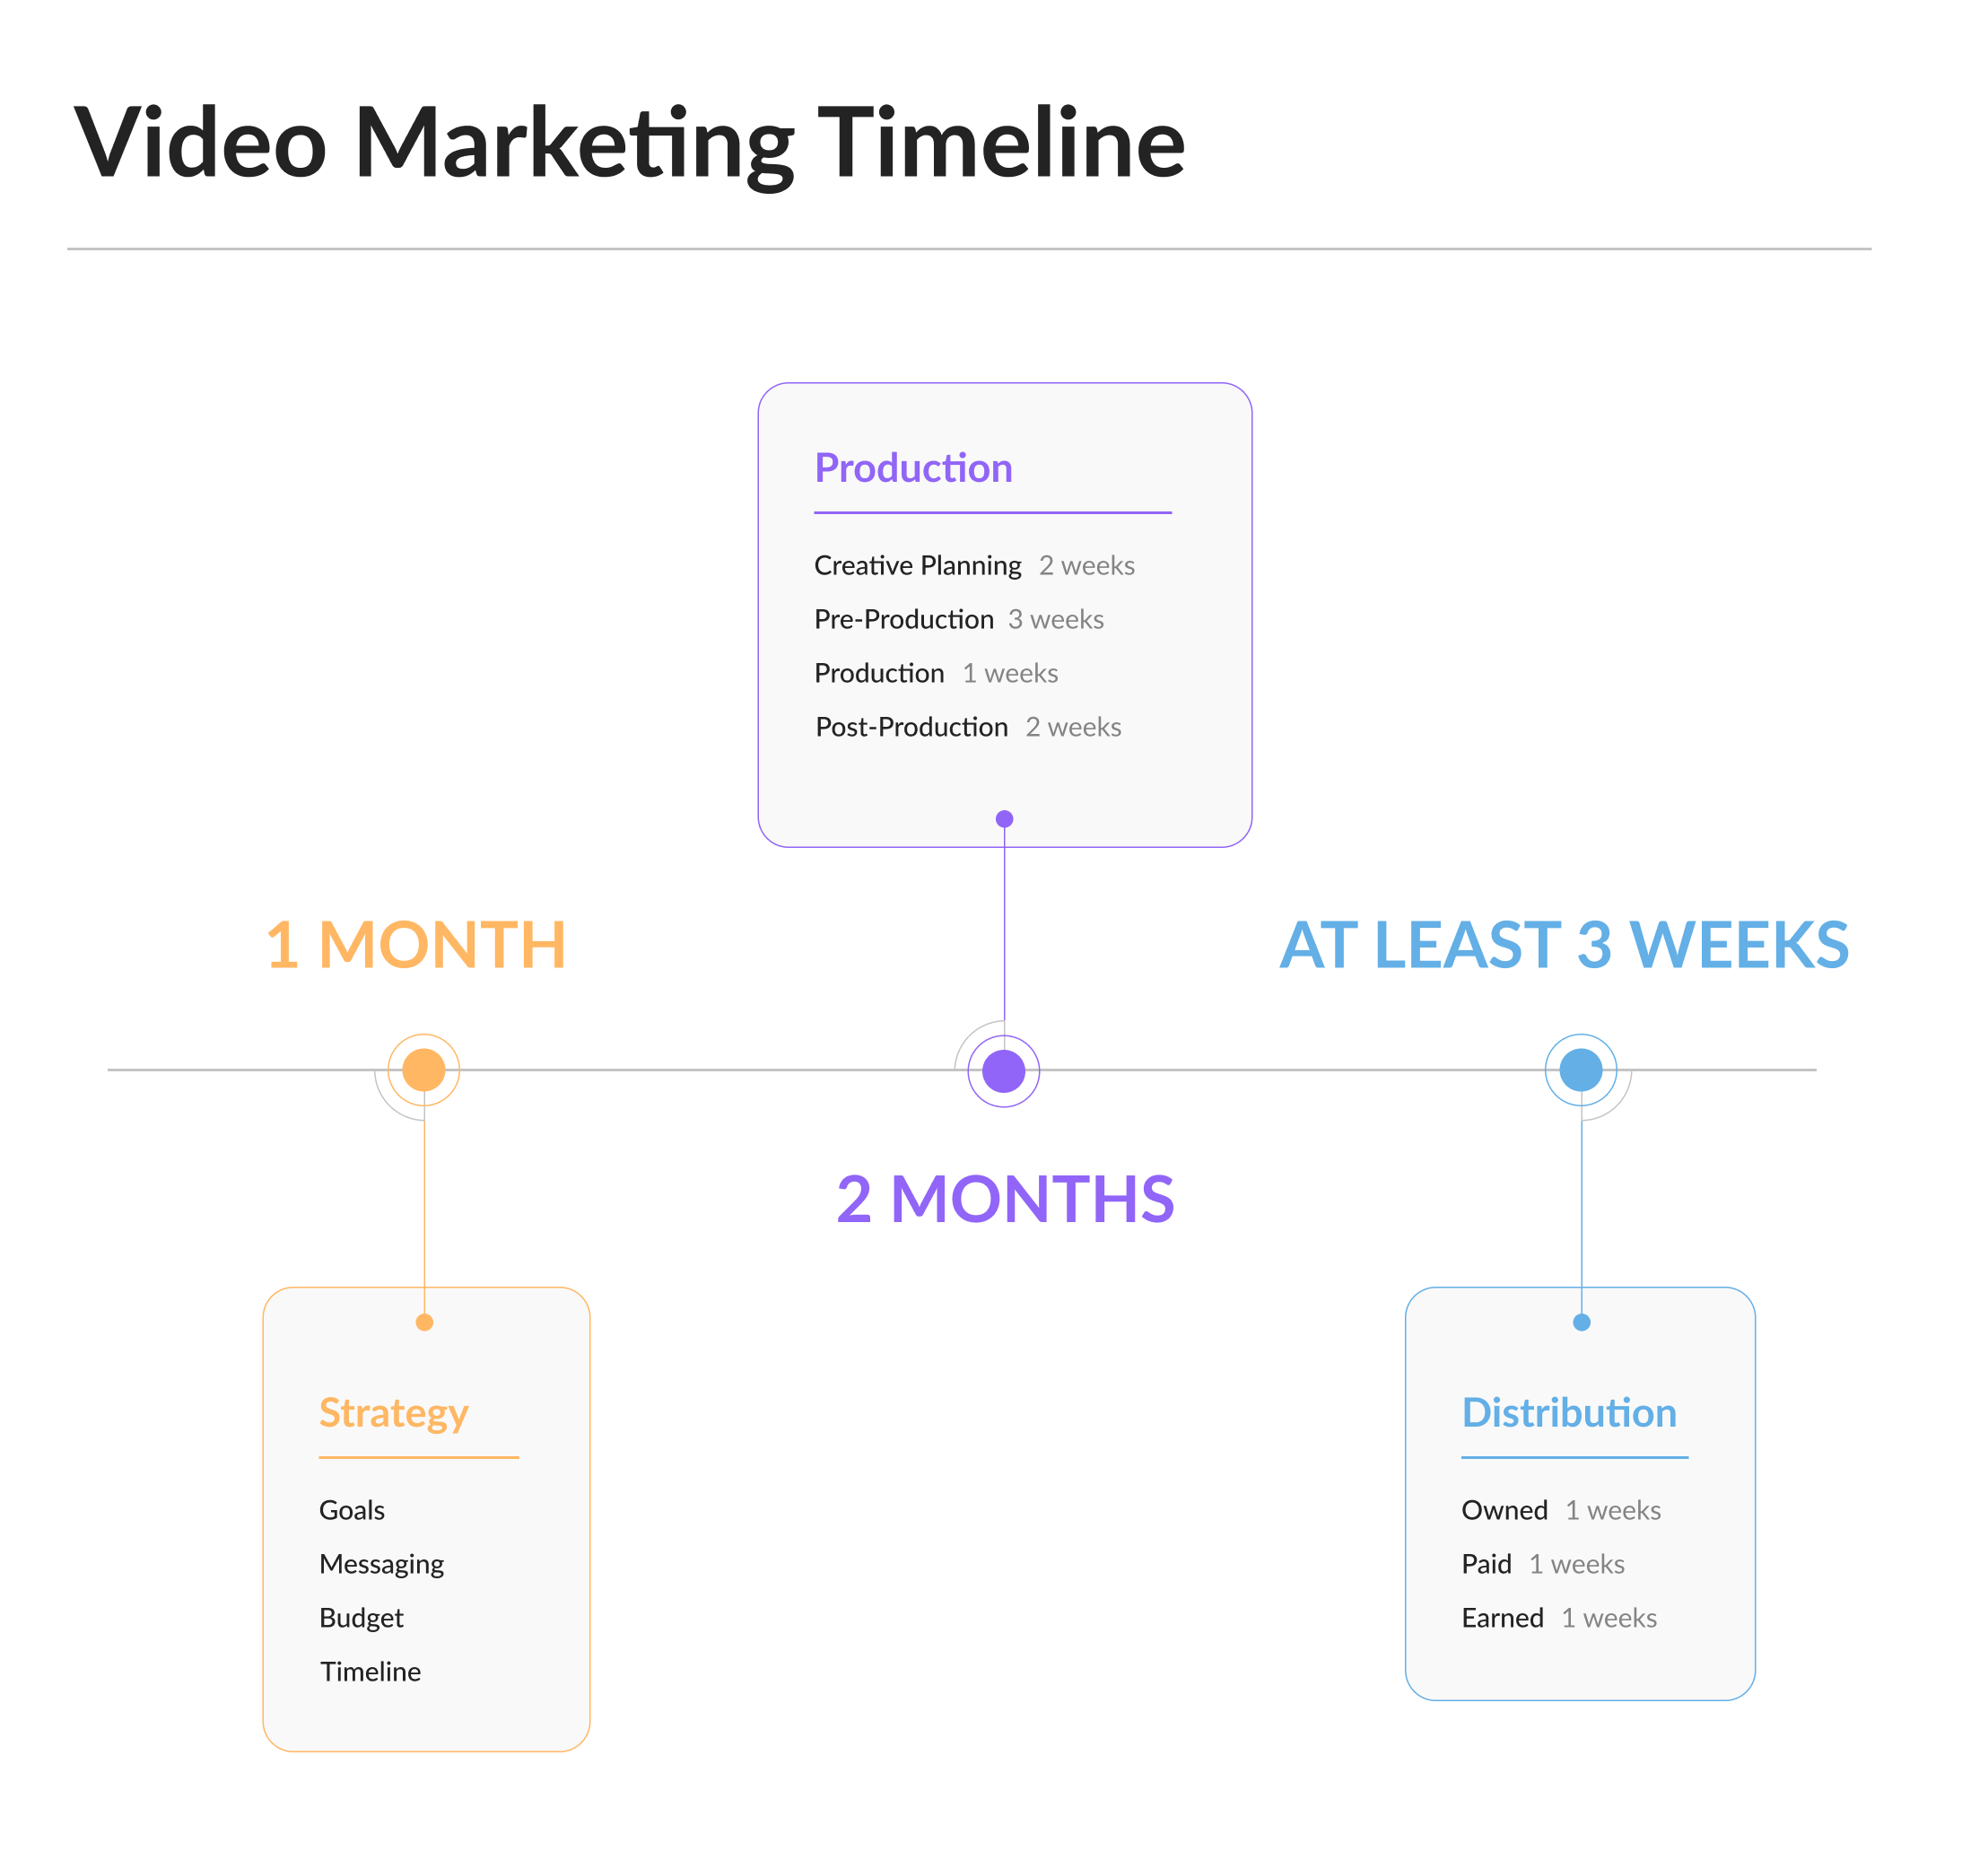 Video Marketing Timeline: Strategy Development, Production, Distribution